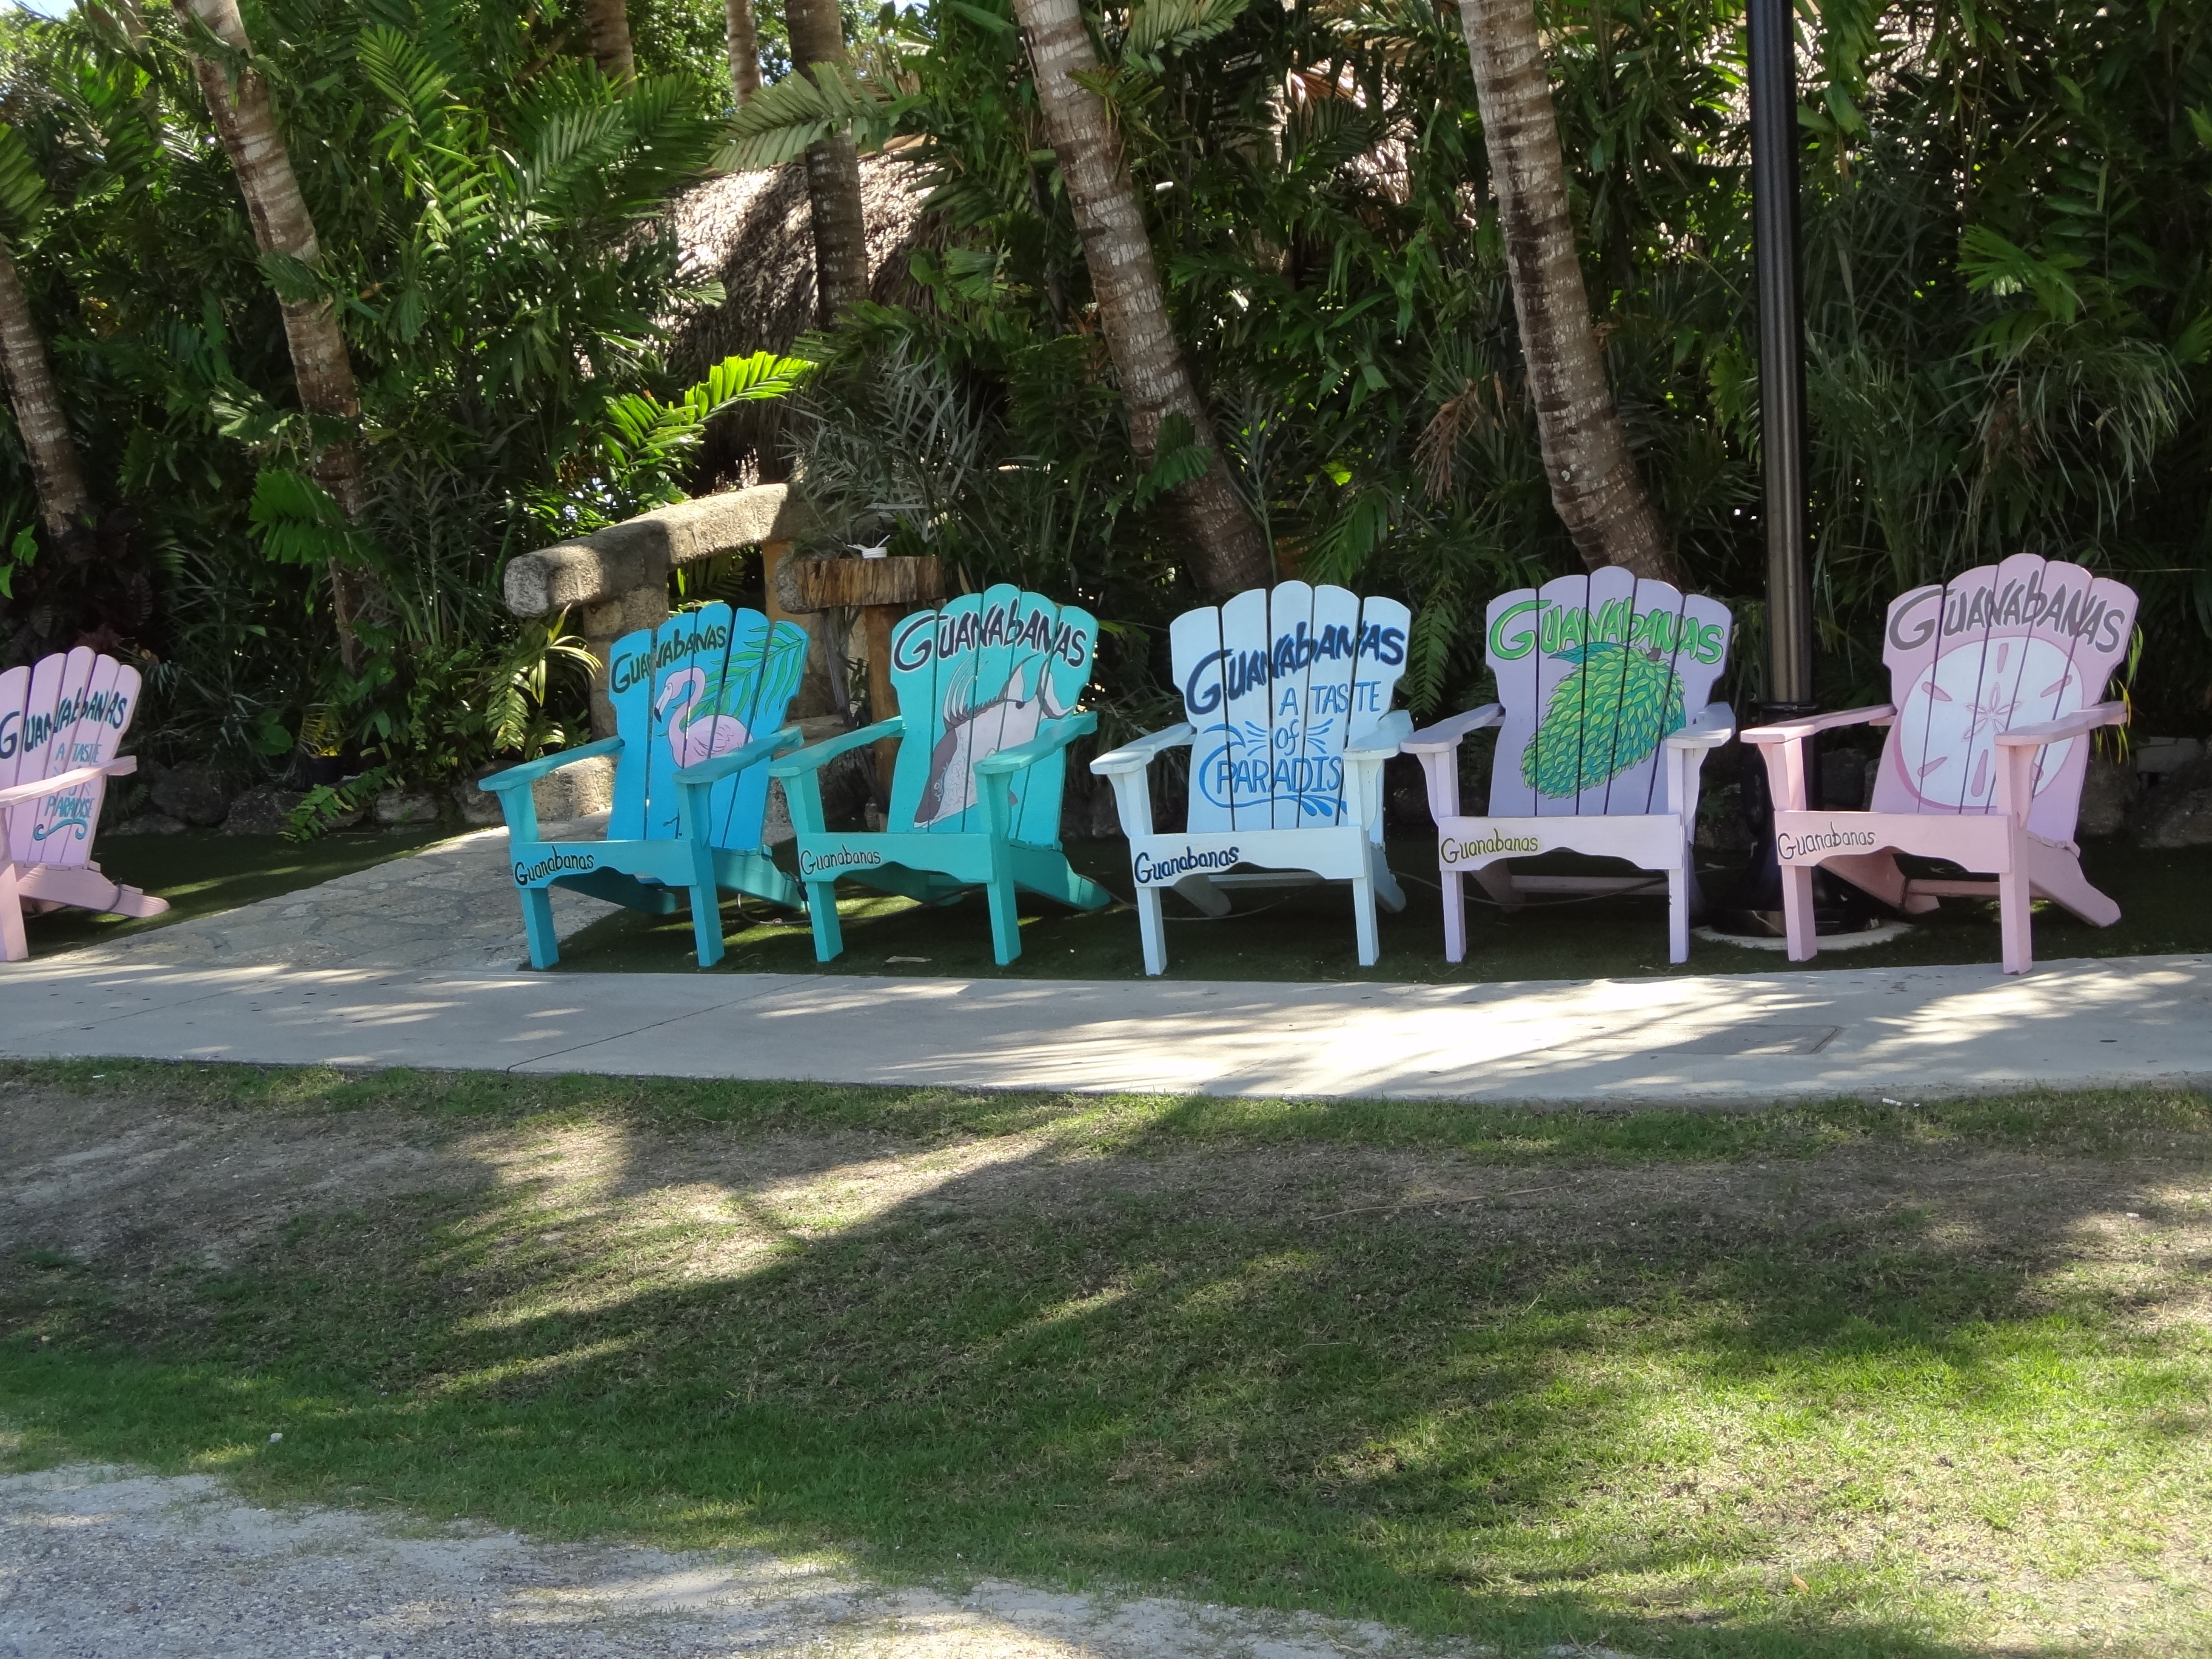 Guanabana's street side waiting area, Jupiter FL